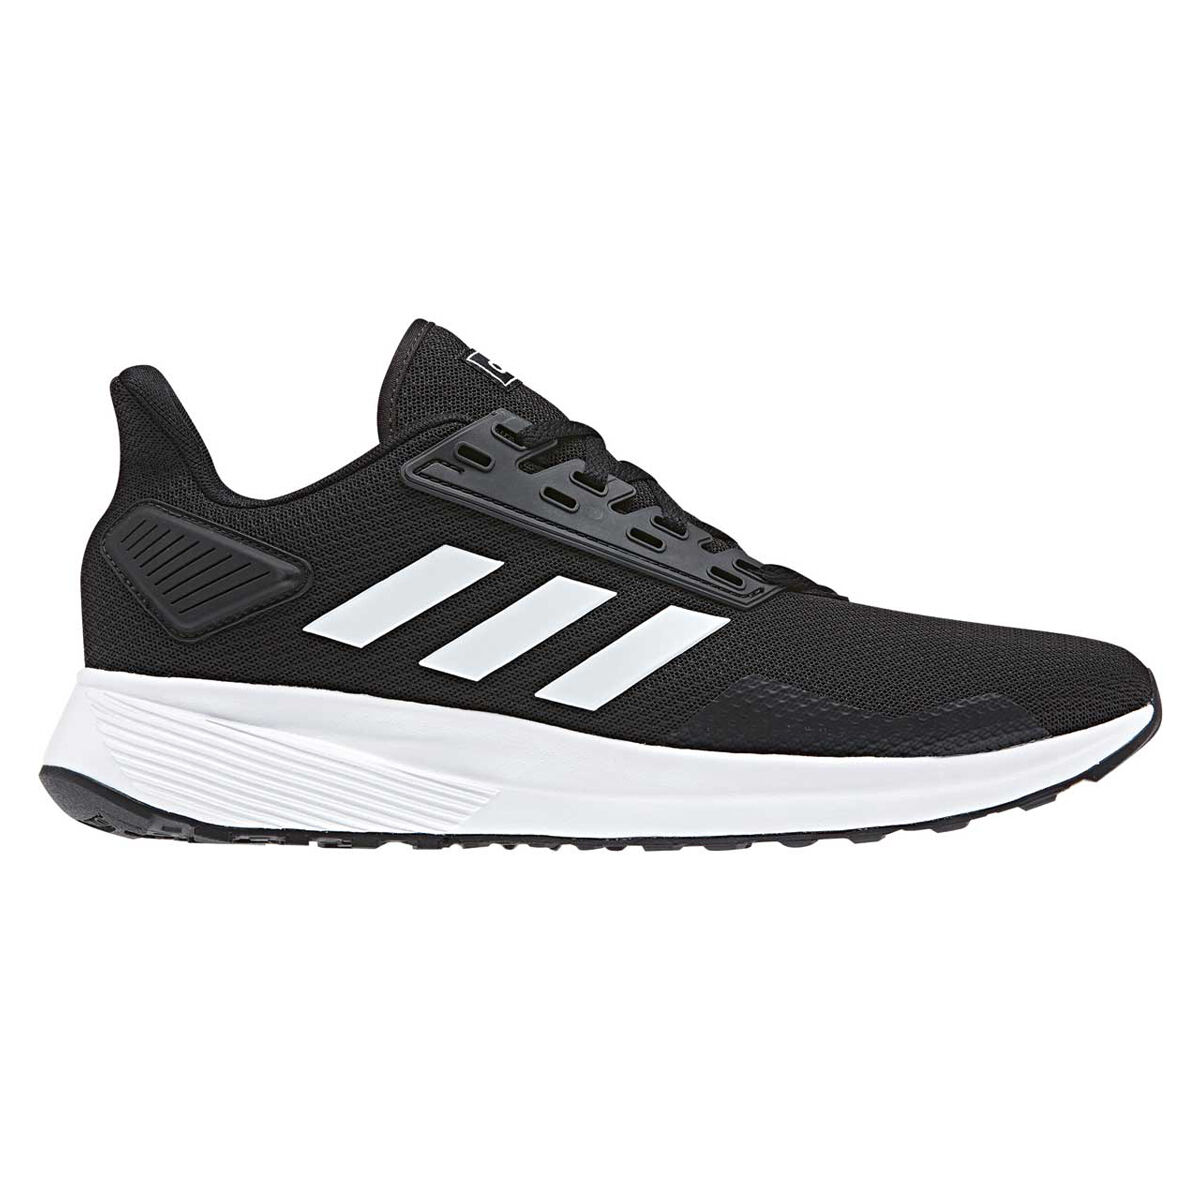 Adidas Mens Running Shoes : Adidas Shoes | Best Quality